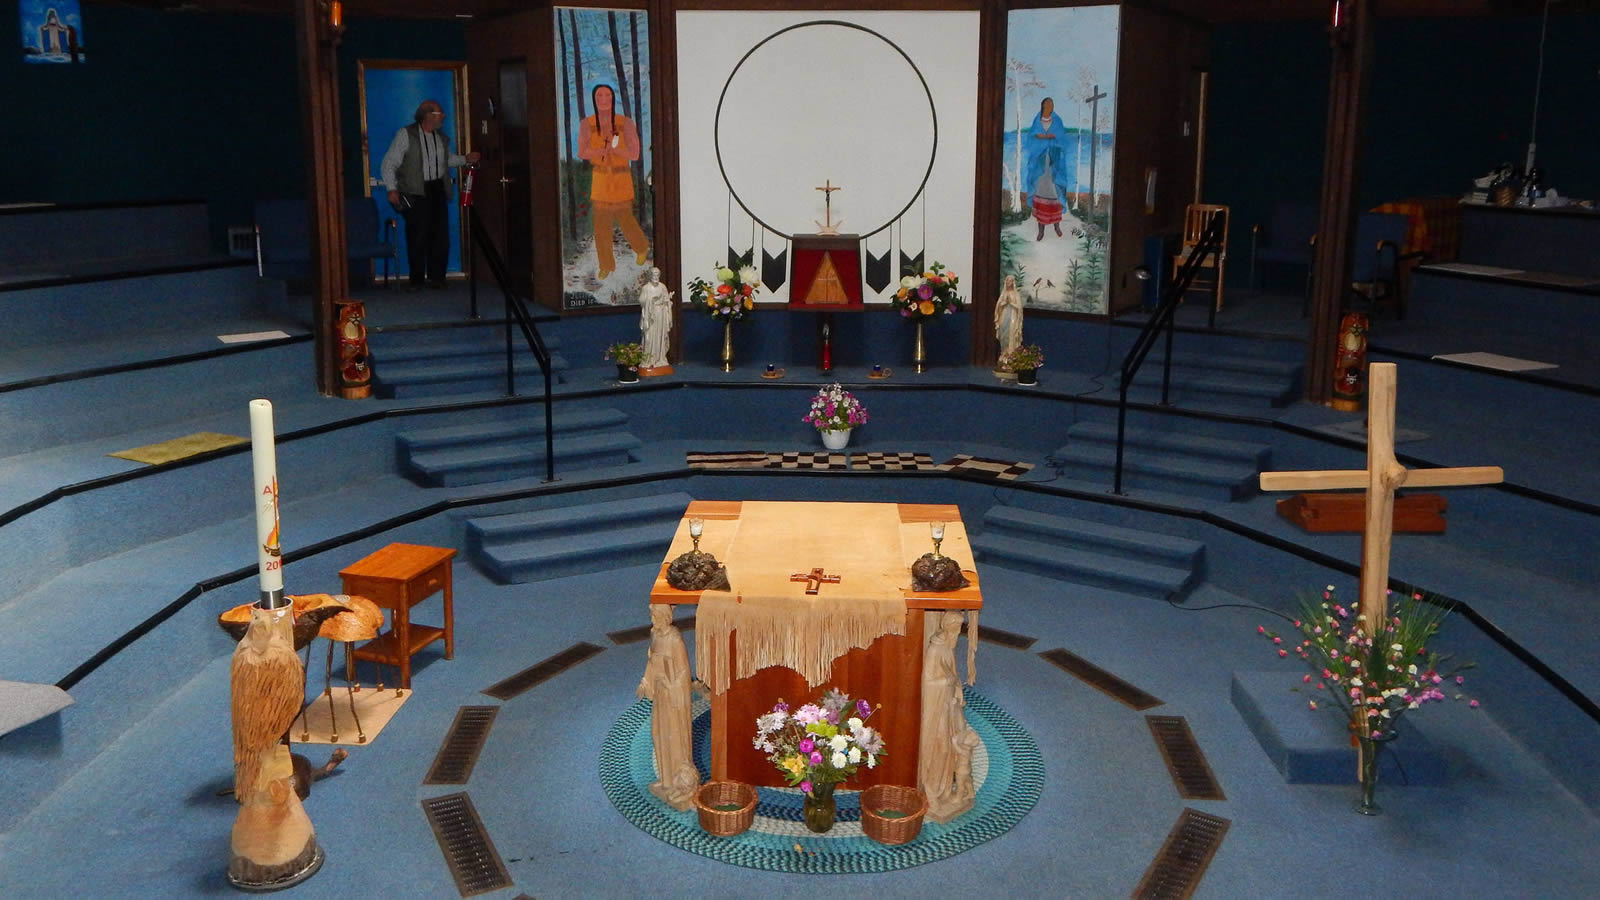 Catholic Church with First Nations Art